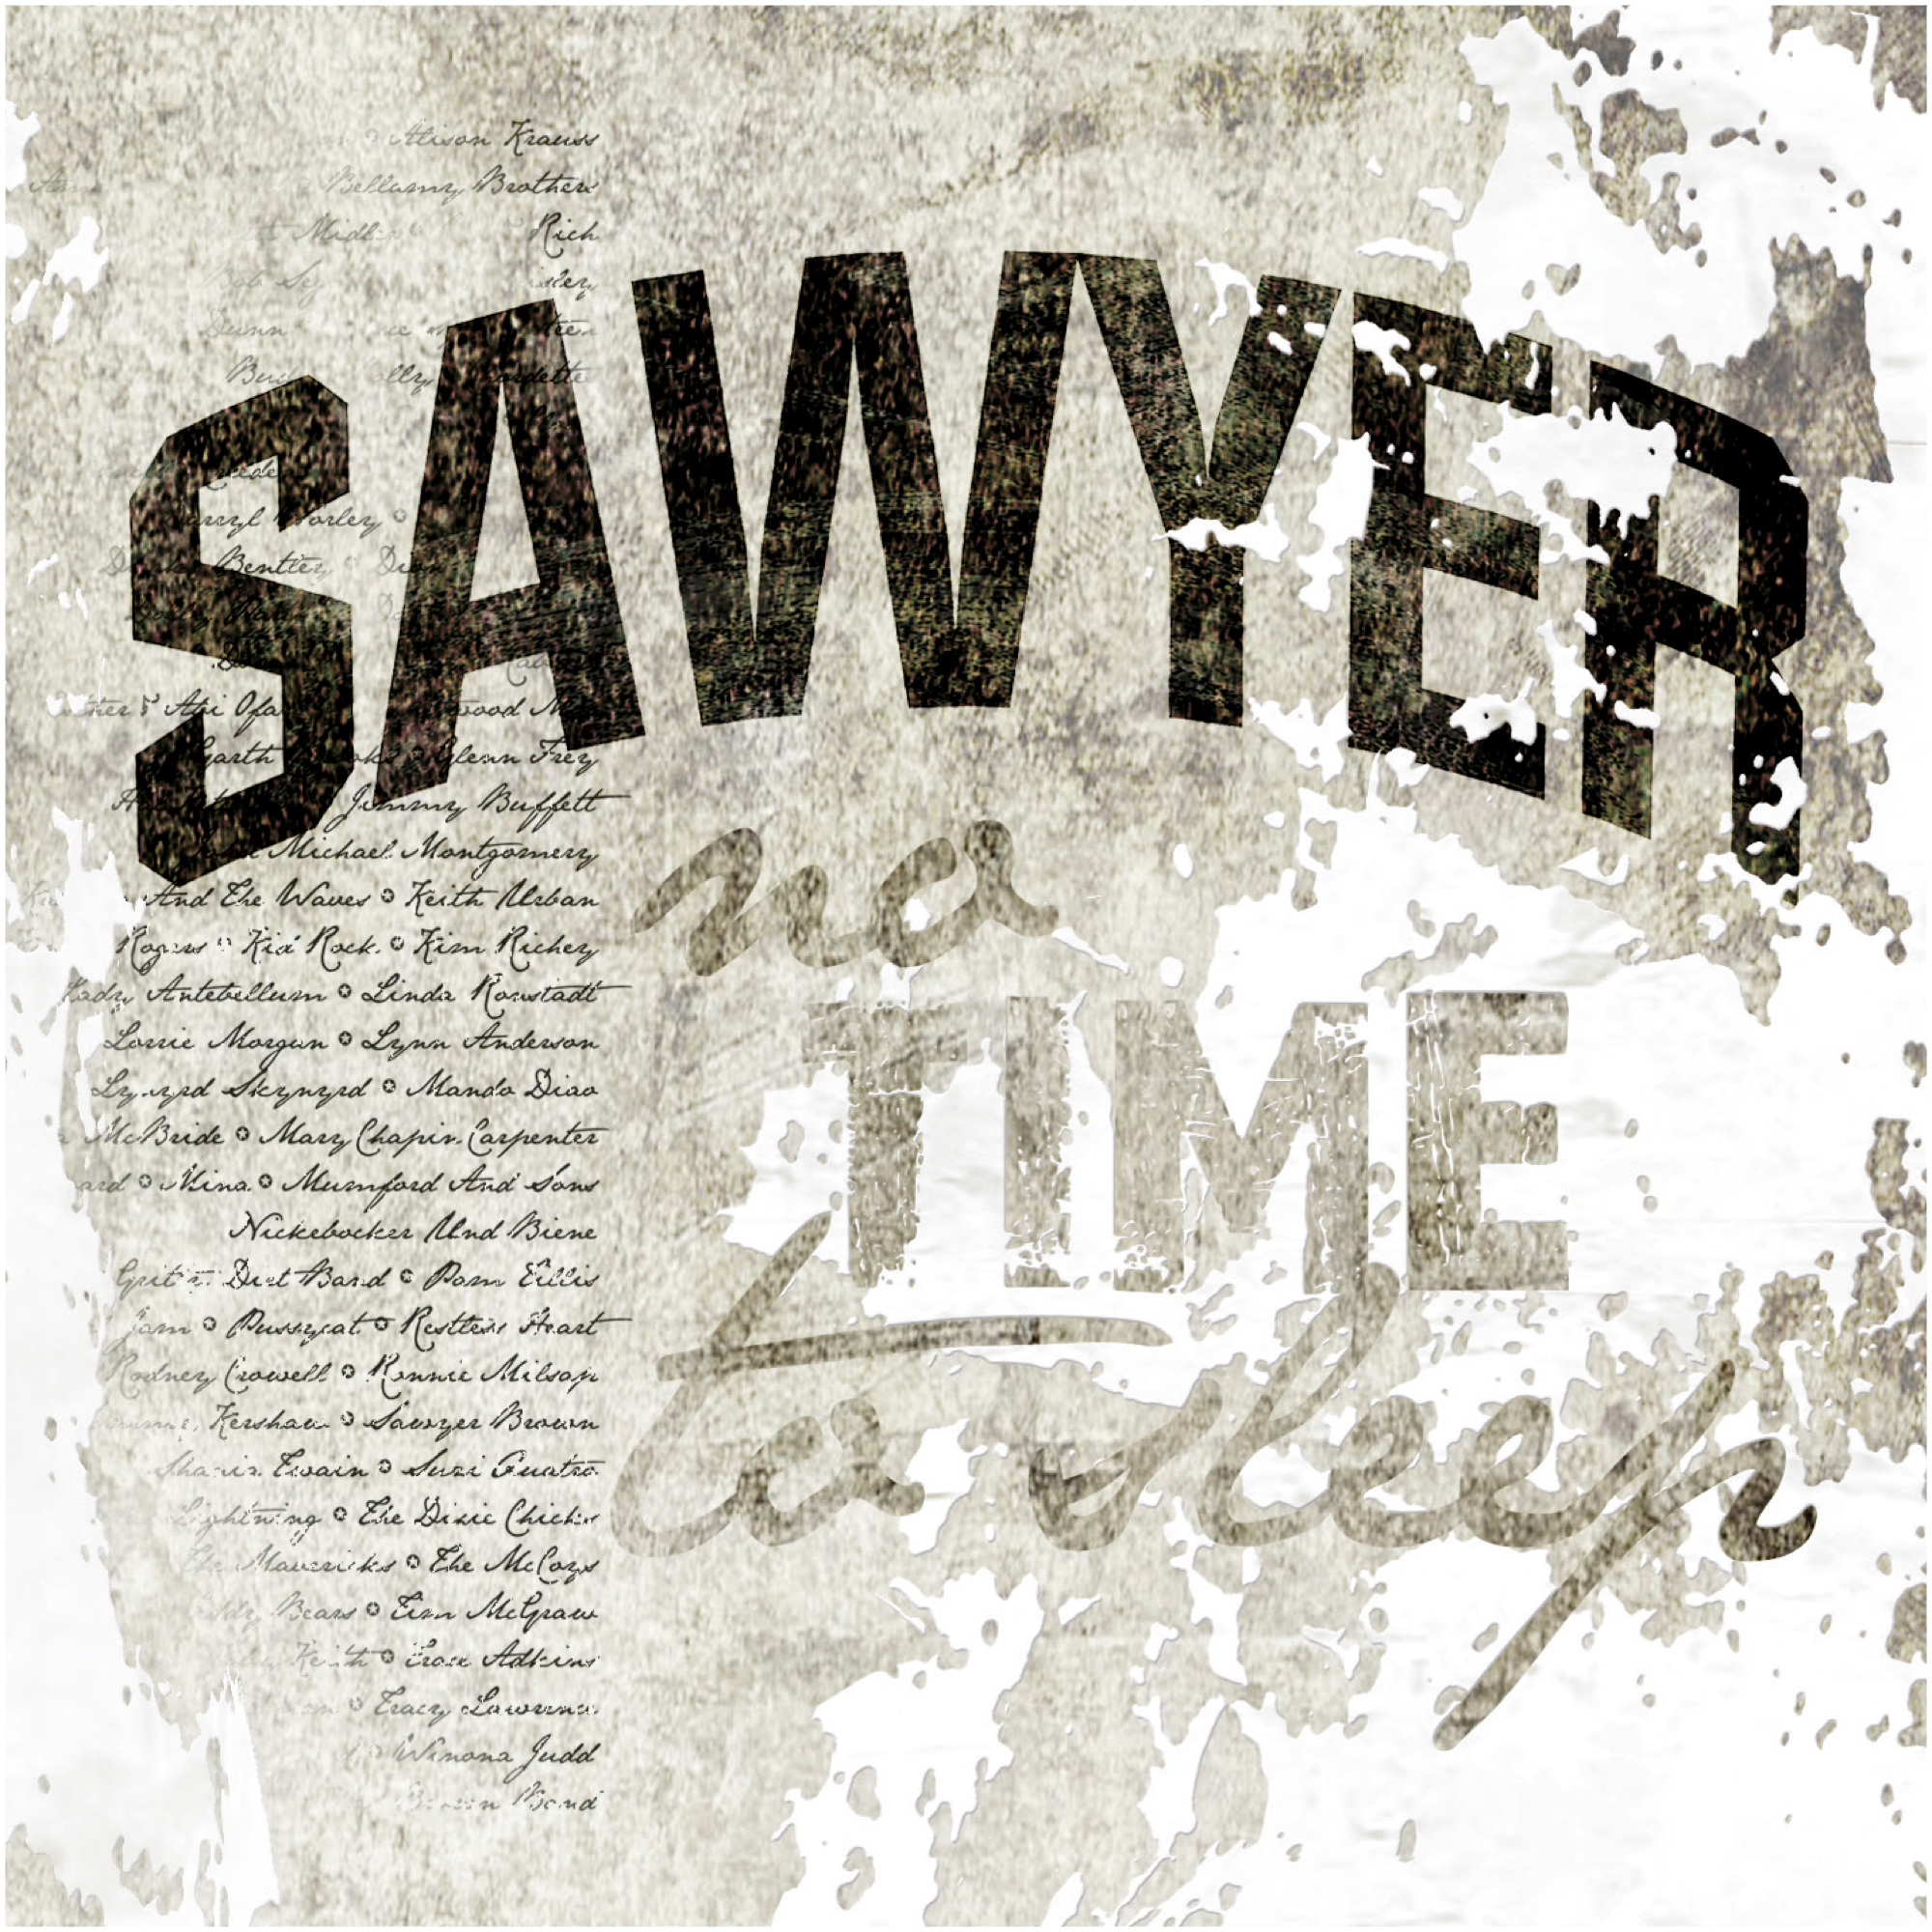 Sawyer - No Time To Sleep